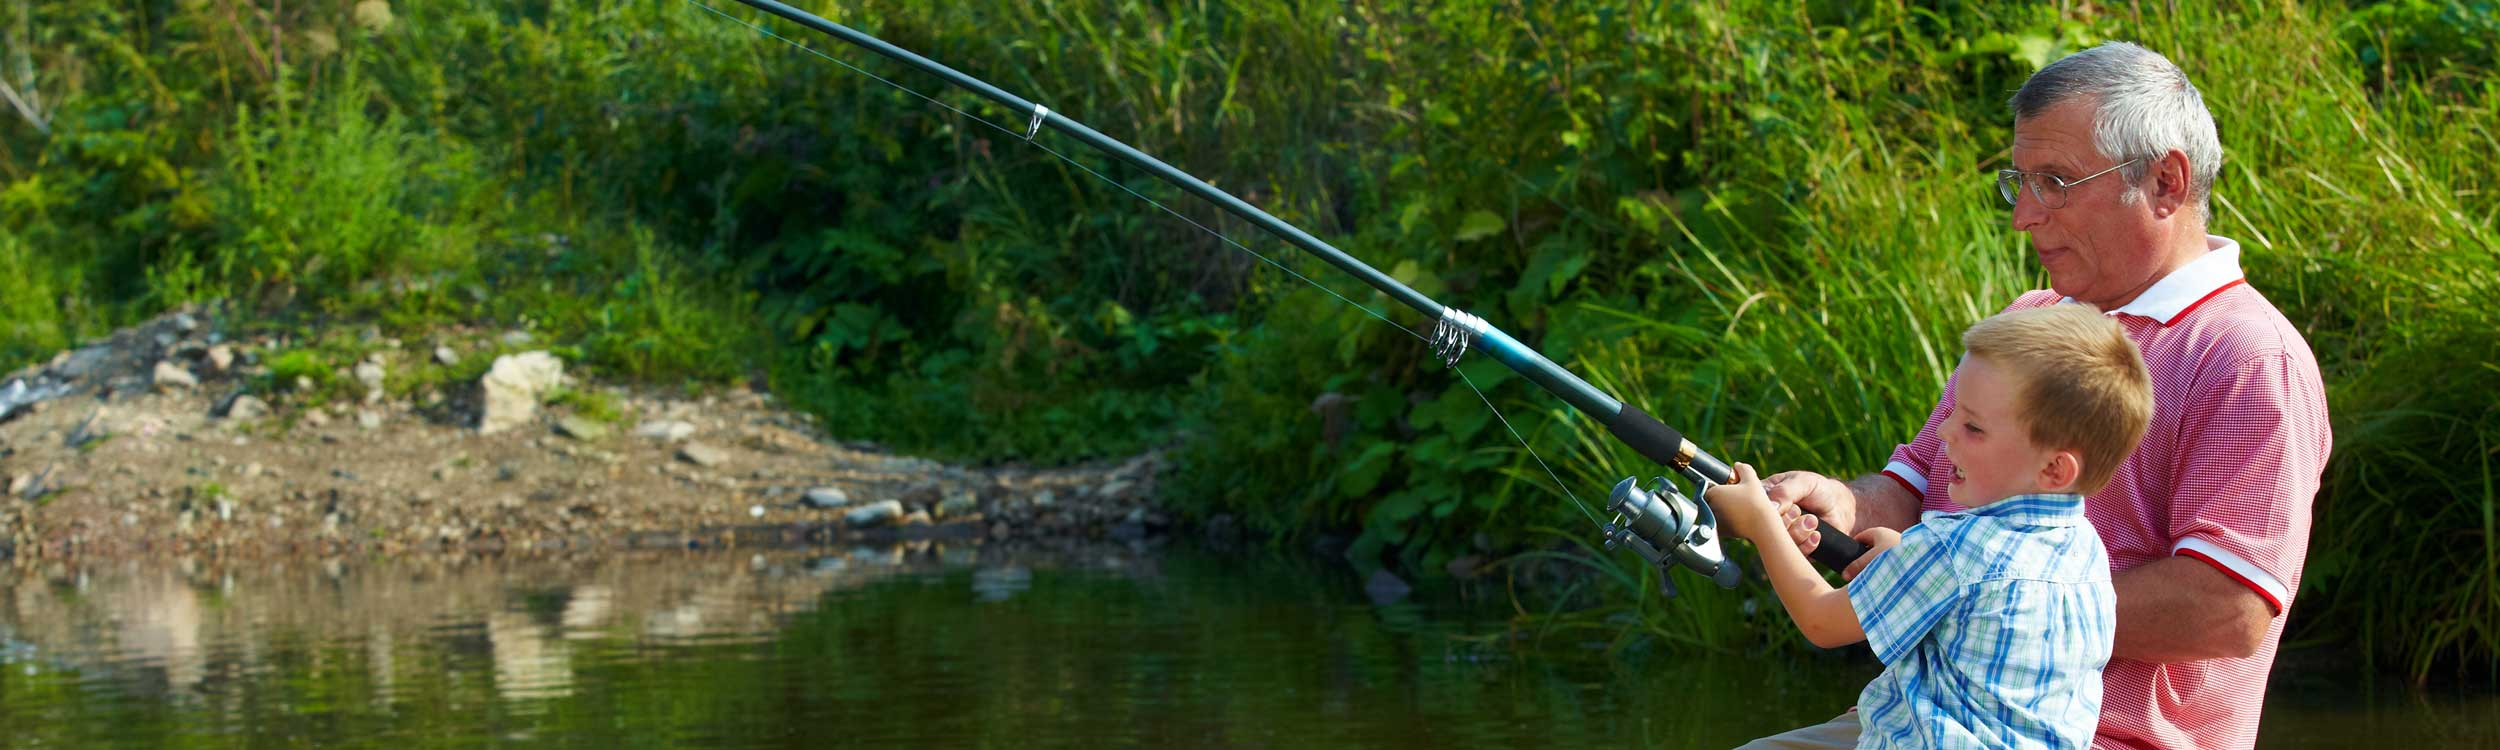 Fishing at Torworth Grange, Retford, Notts, fish in one of our many lakes filled with carp and a variety of silver fish, in peaceful surroundings with all the facilities, near worksop, tickhill, tuxford, harworth